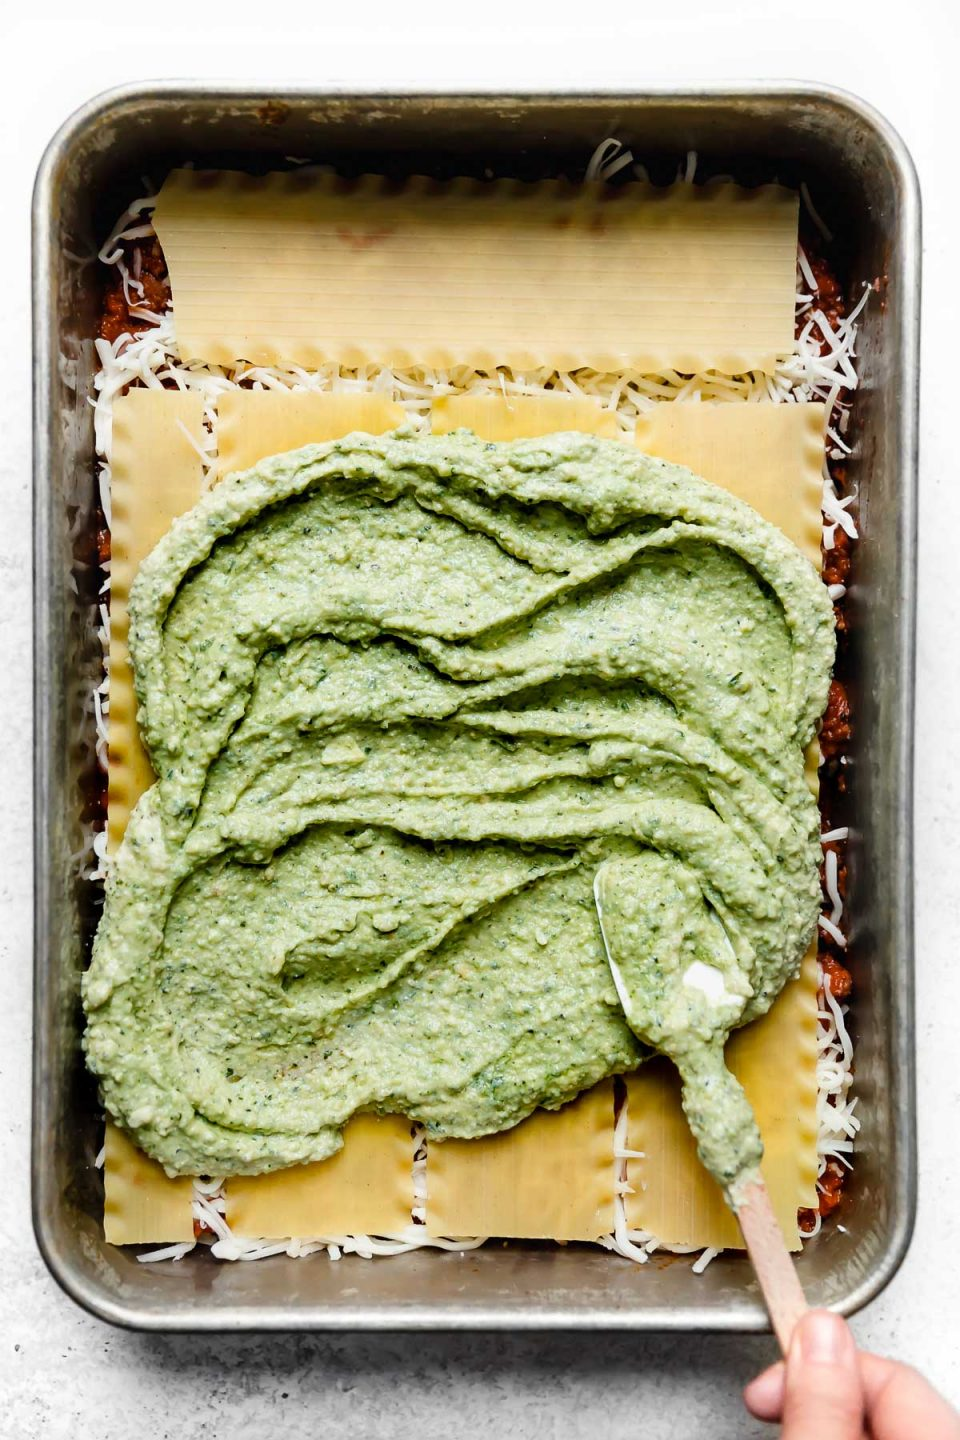 How to assemble & layer lasagna: spreading basil pesto ricotta over a layer of noodles.